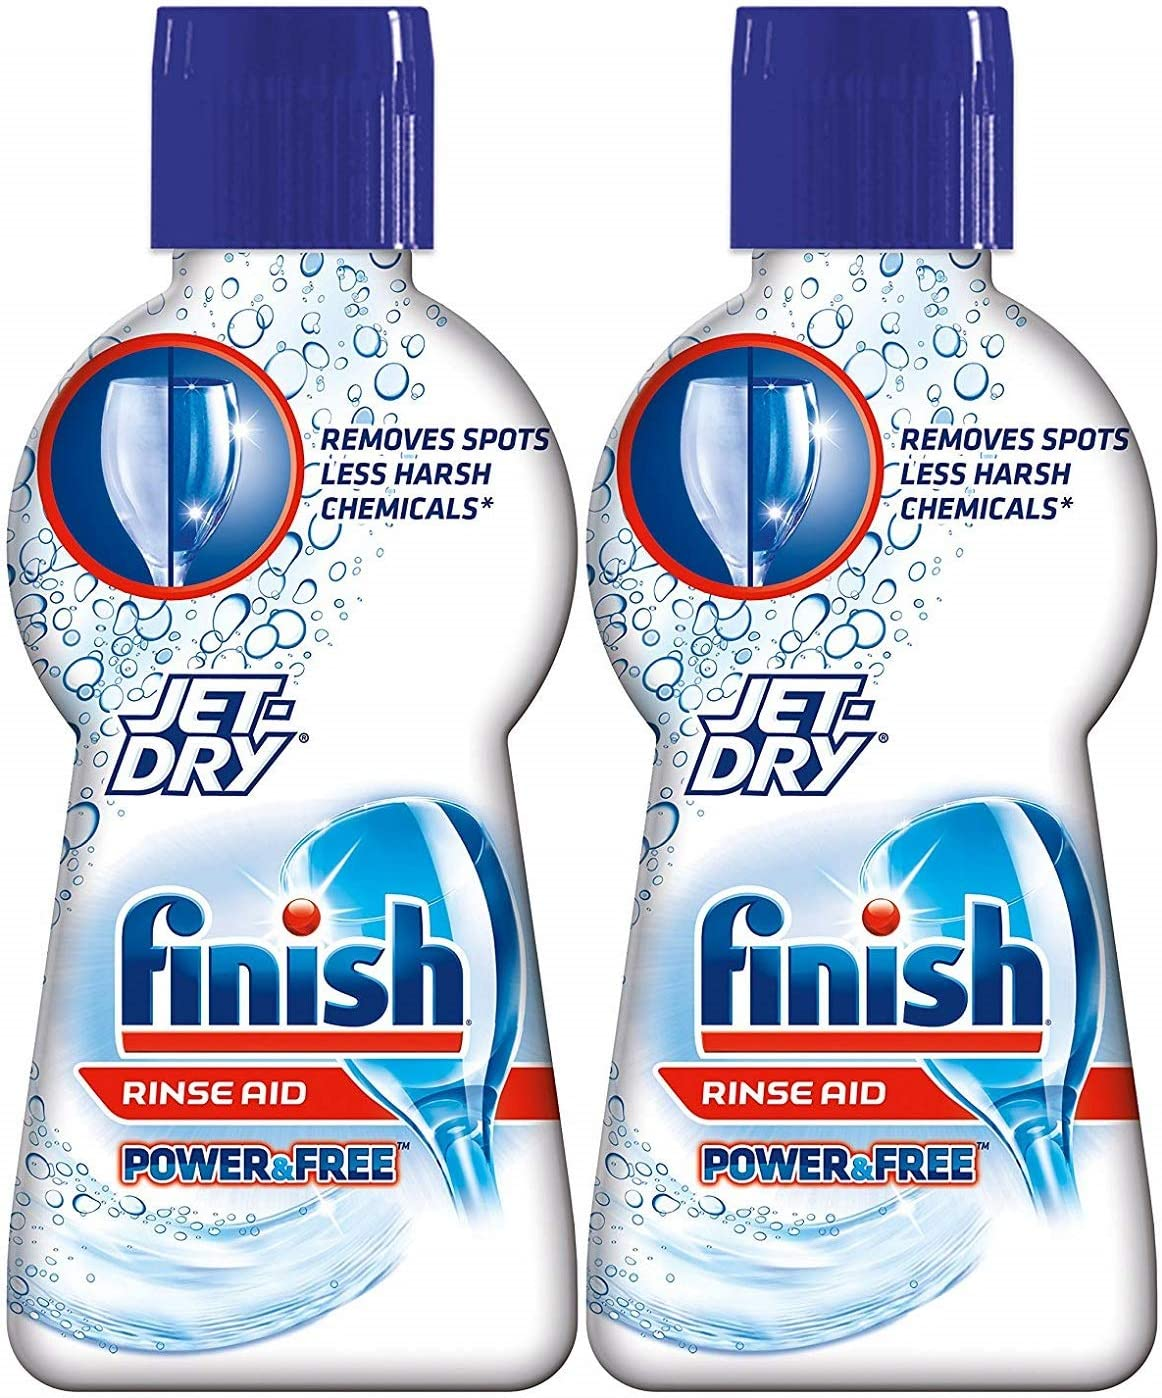 Finish 689358586390 Power & Free Rinse Aid with Jet Dry-Shinier Dishes-Less Harsh Chemicals Chemicals-65 Washes Per Bottle-Net Wt. 6.76 FL OZ (200 mL) Each- 2 Pack, 200 mL, 2 Pk, 6.76 Oz